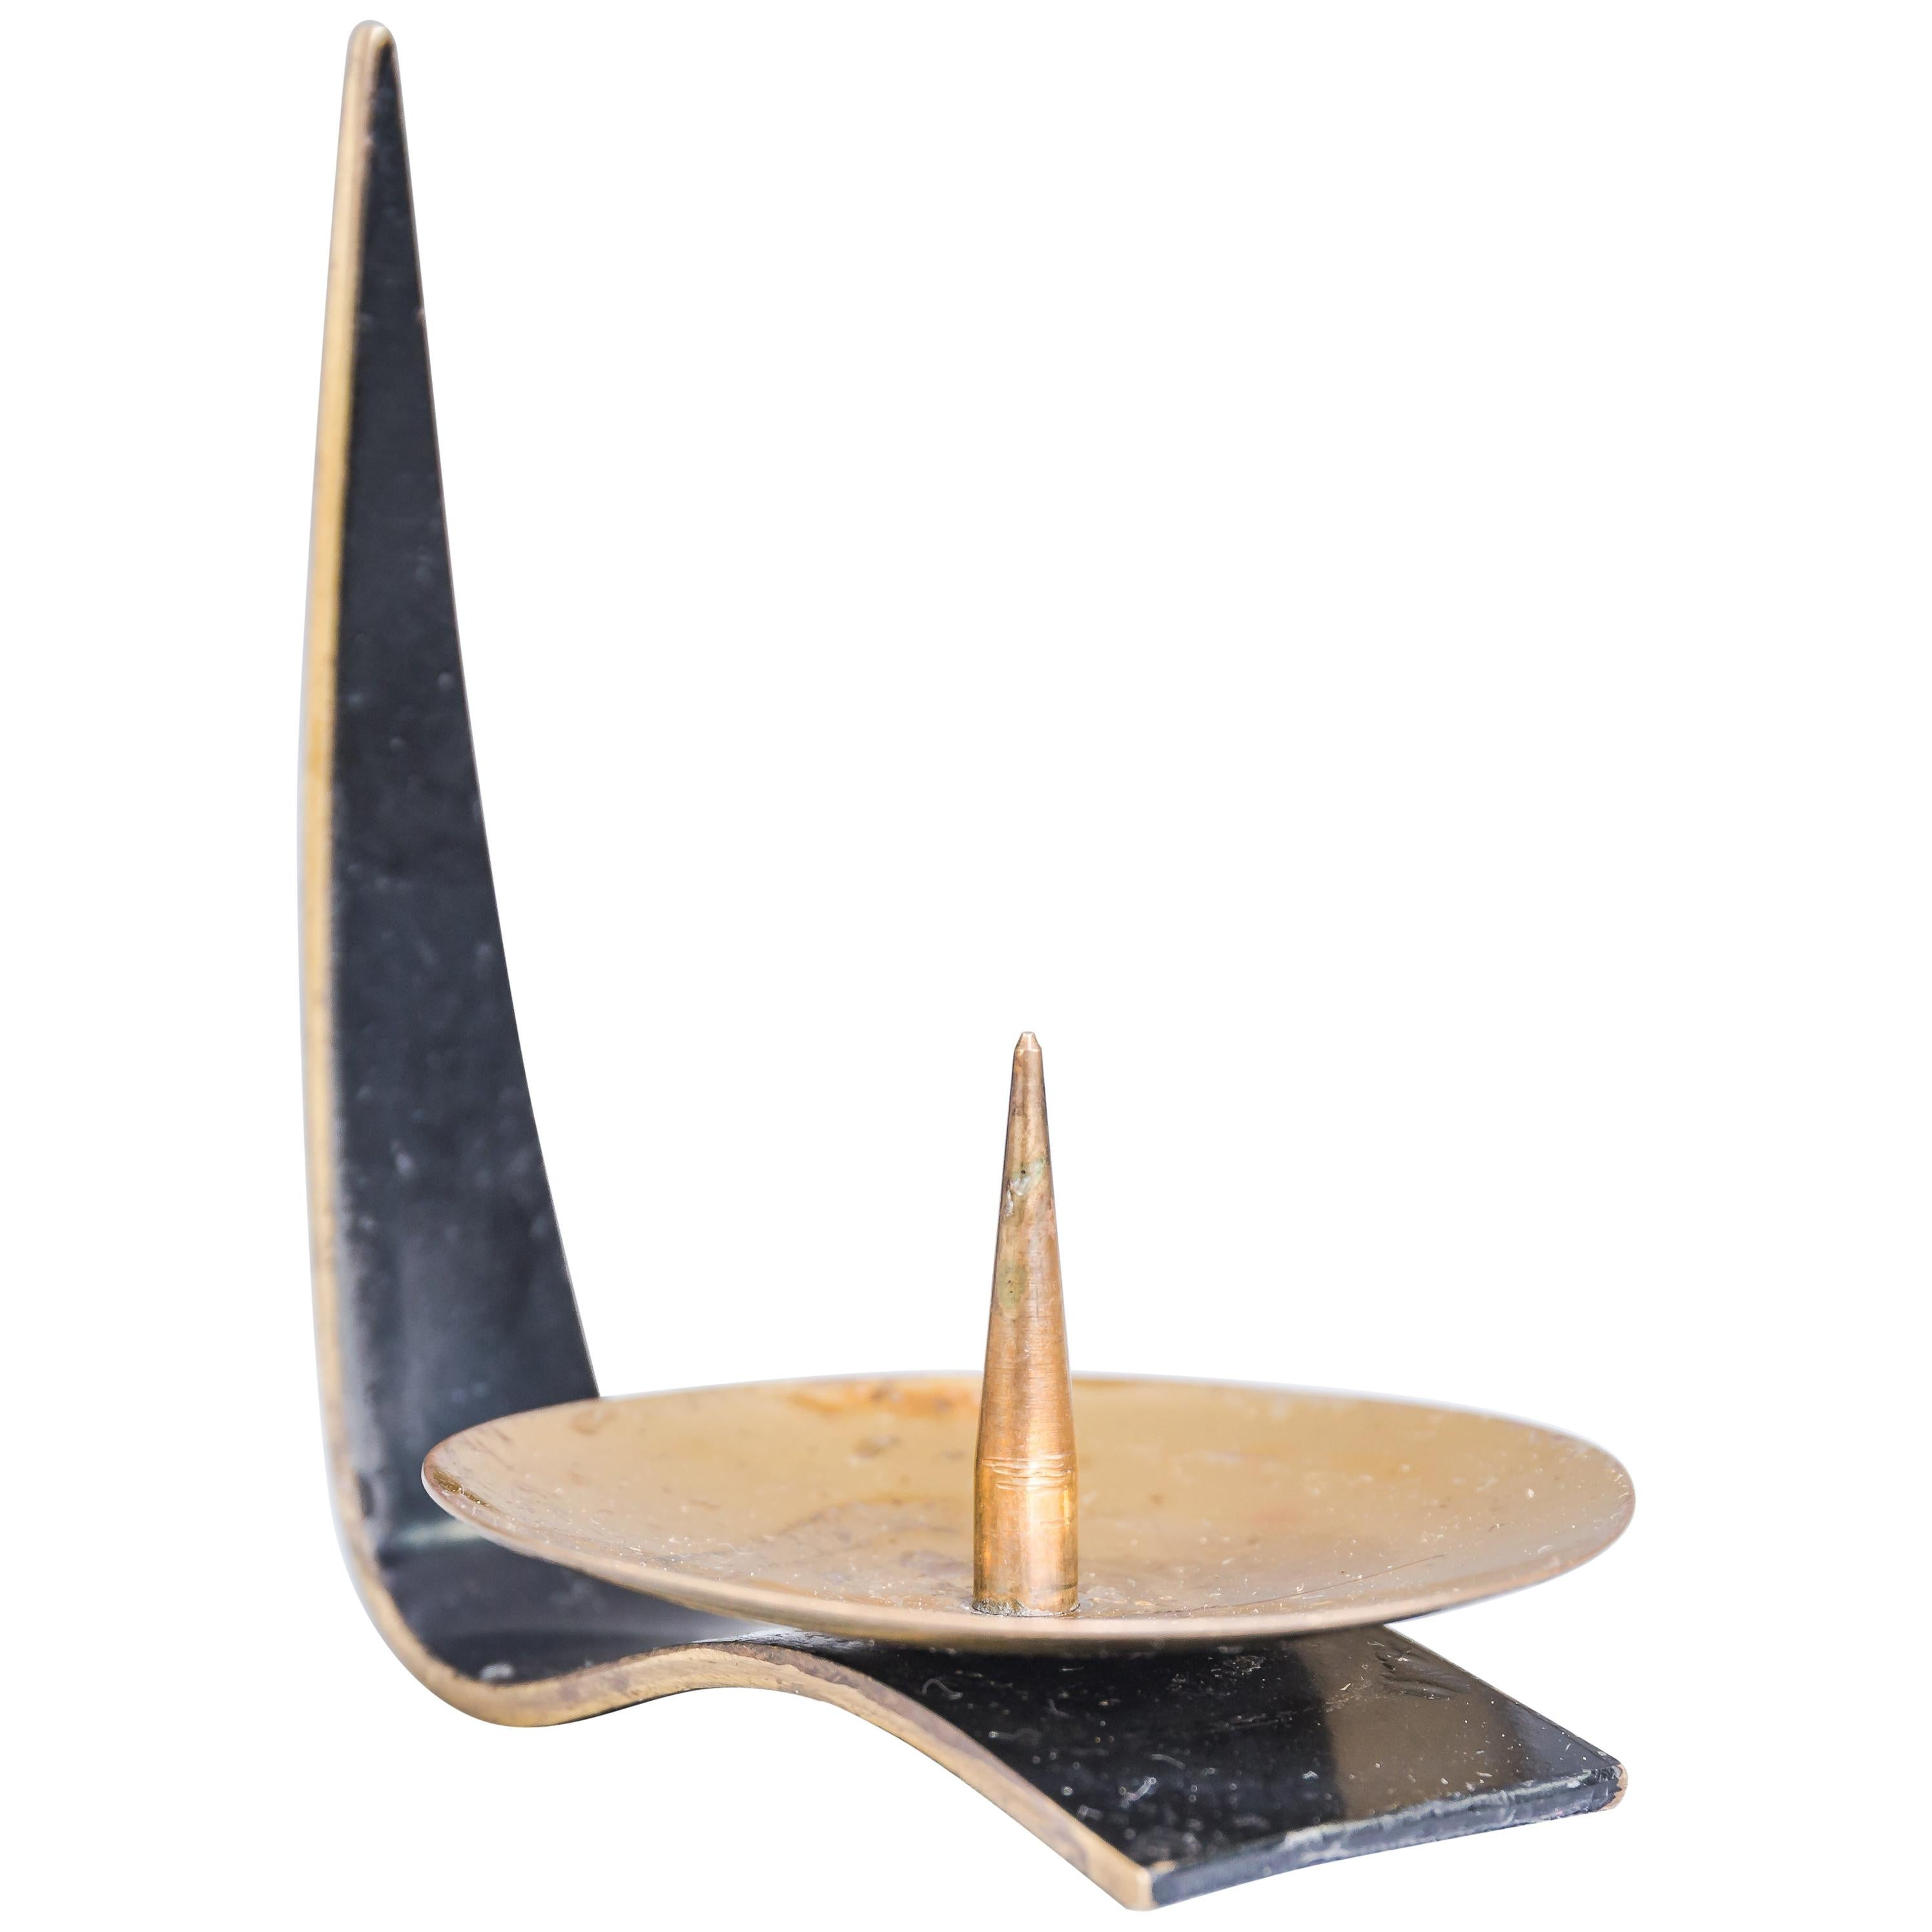 Walter Bosse candle holder around 1950s